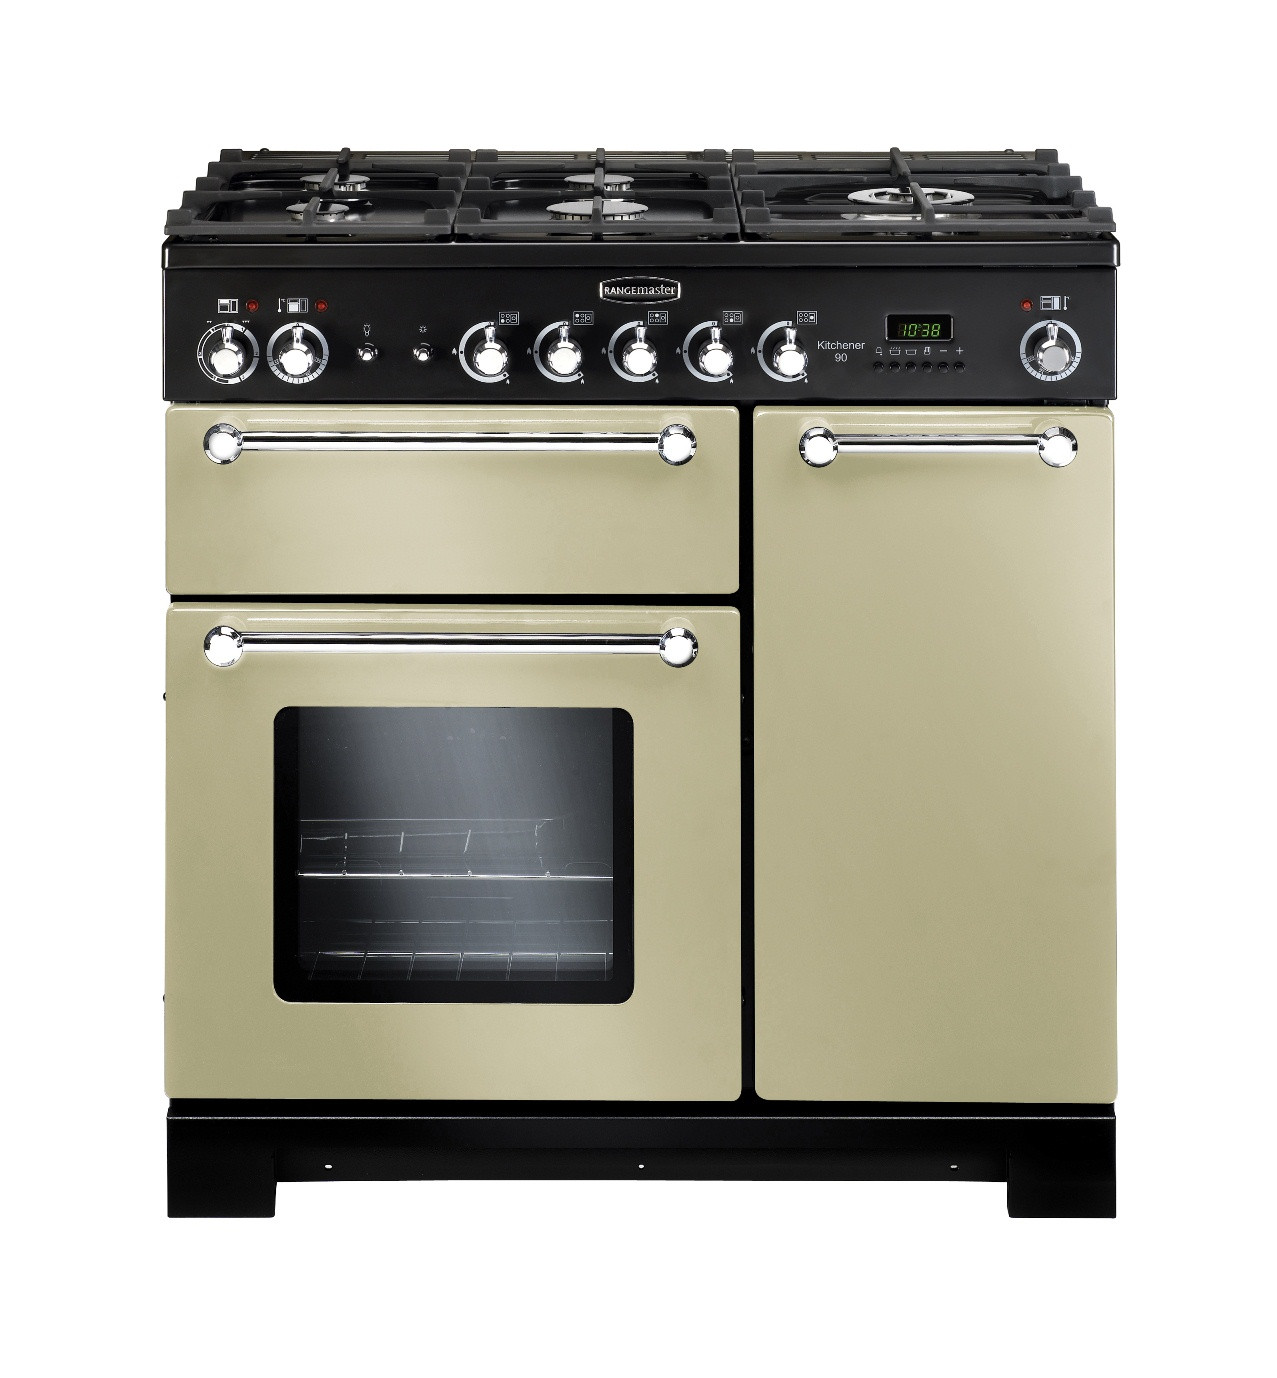 Rangemaster Kitchener 90 Dual Fuel Cream Range Cooker 81440